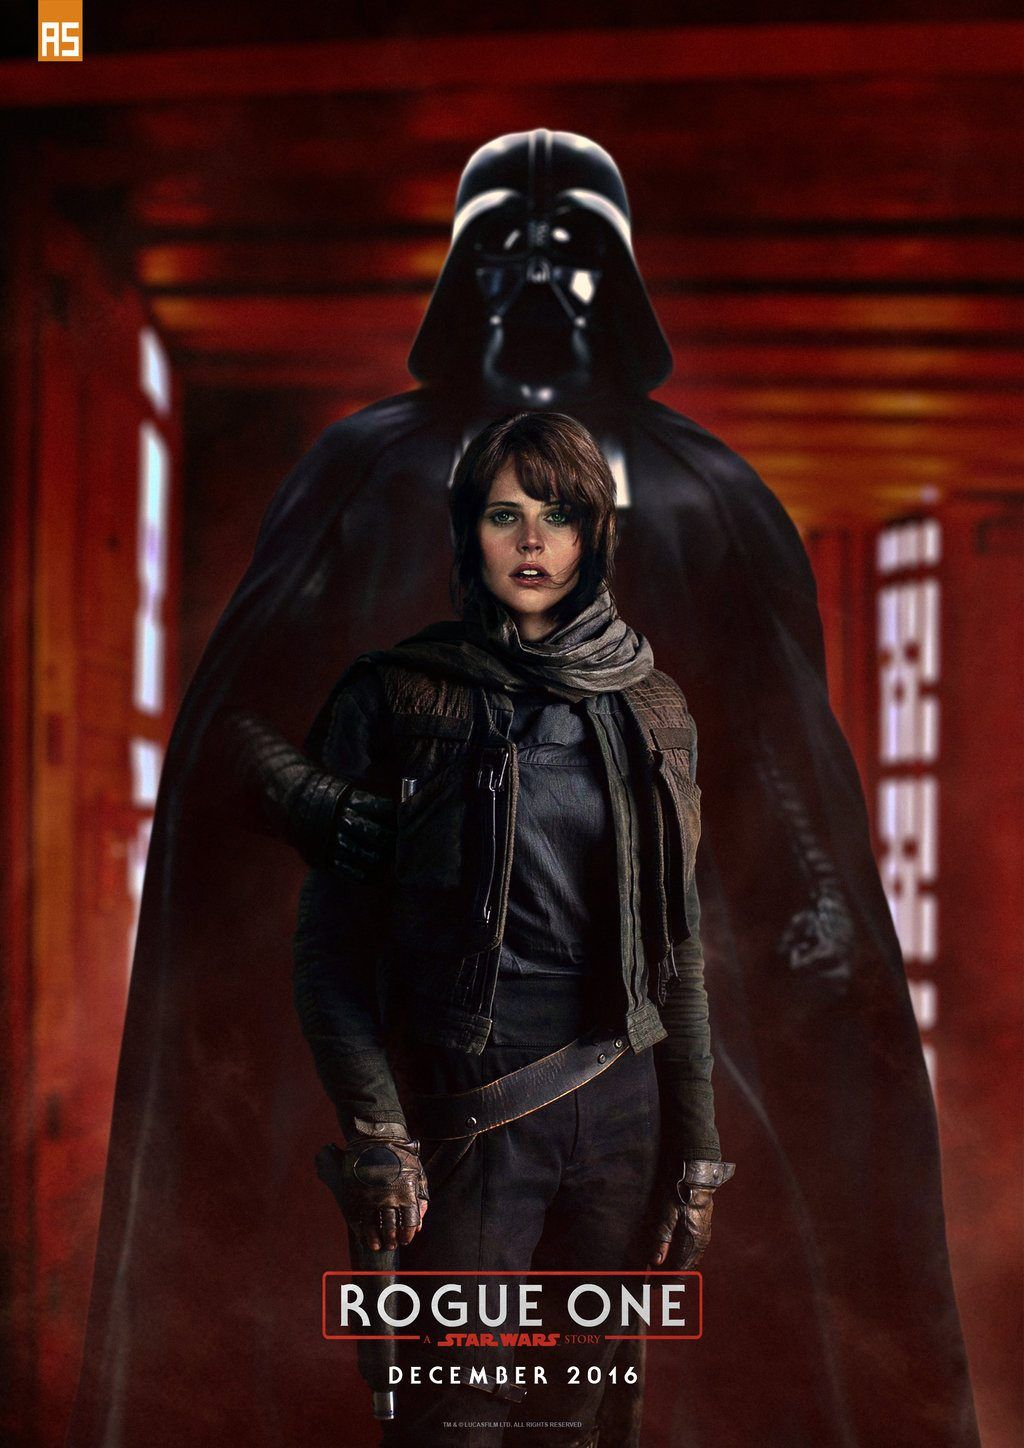 Rogue One A Star Wars Story 2016 Hd Wallpaper From Gallsource Com